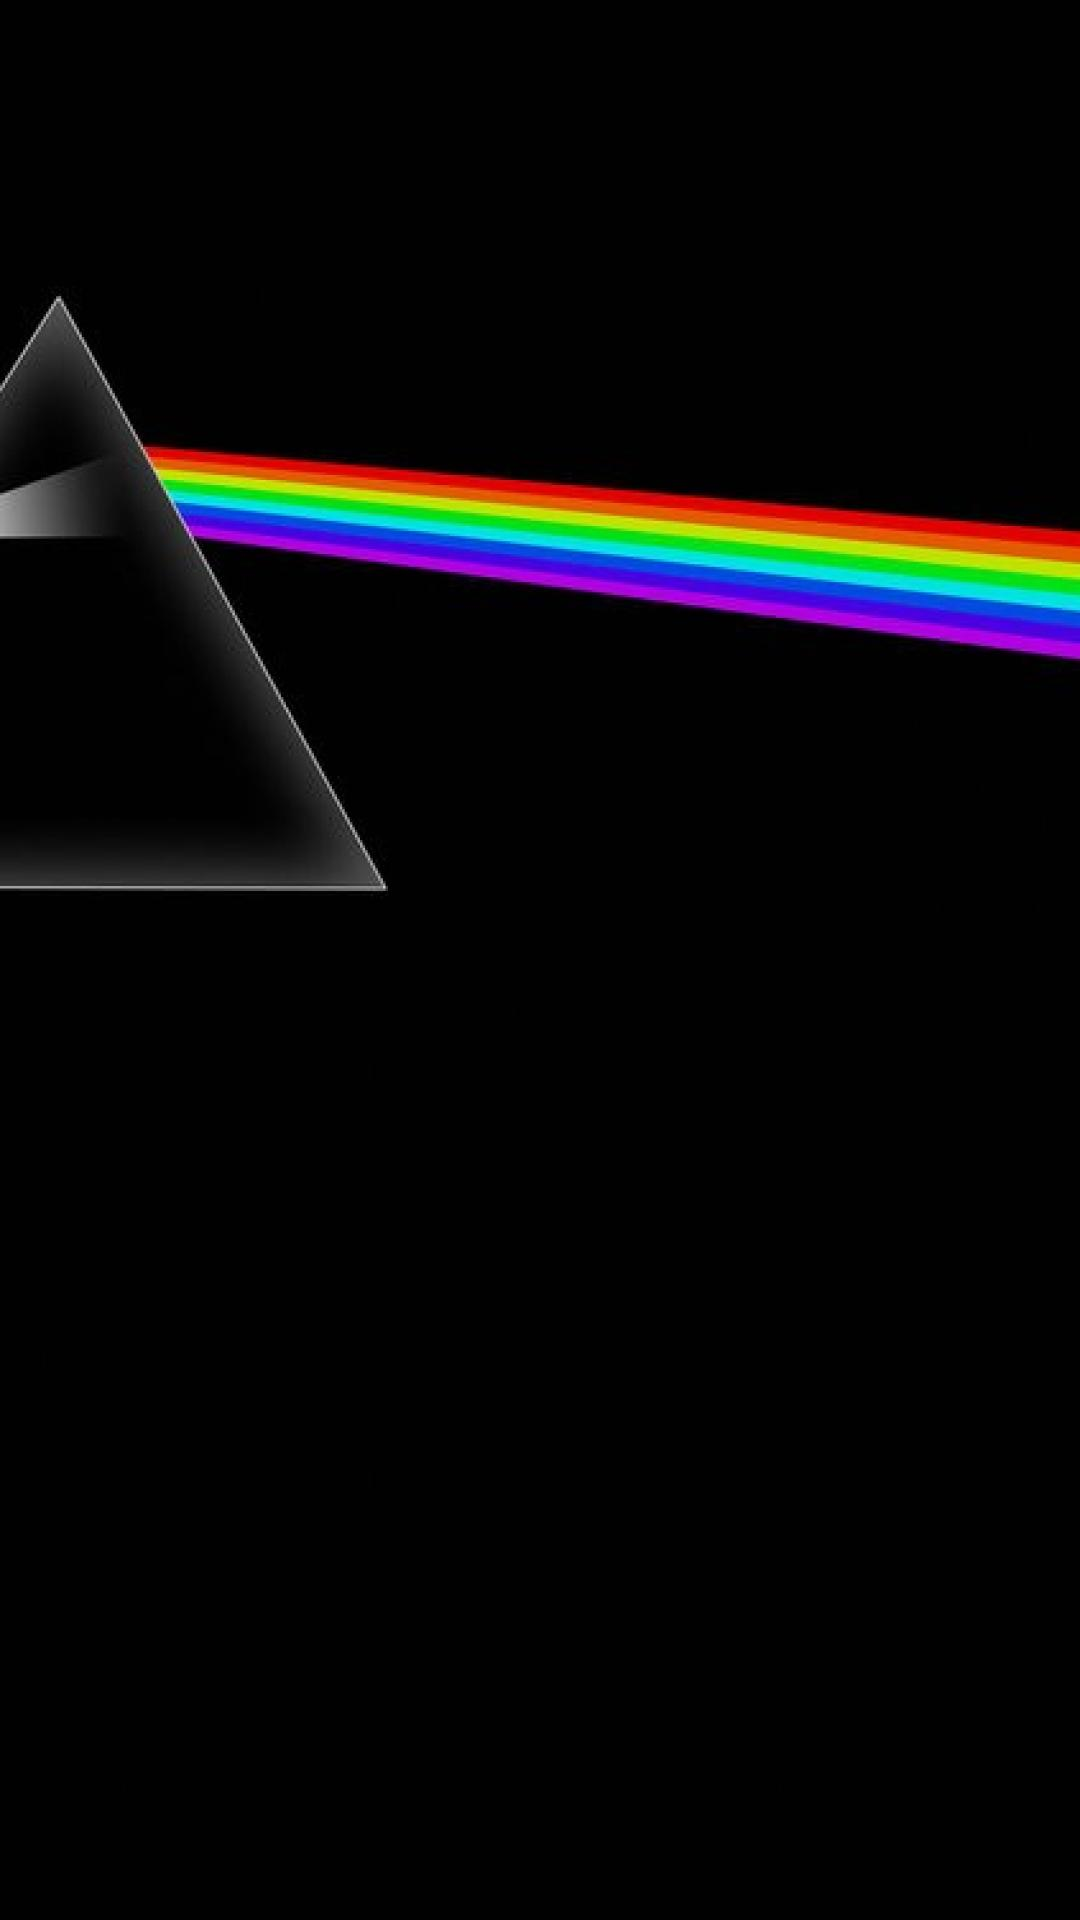 1080x1920 Luxury Pink Floyd Hd Wallpaper For Mobile - cute girly ...